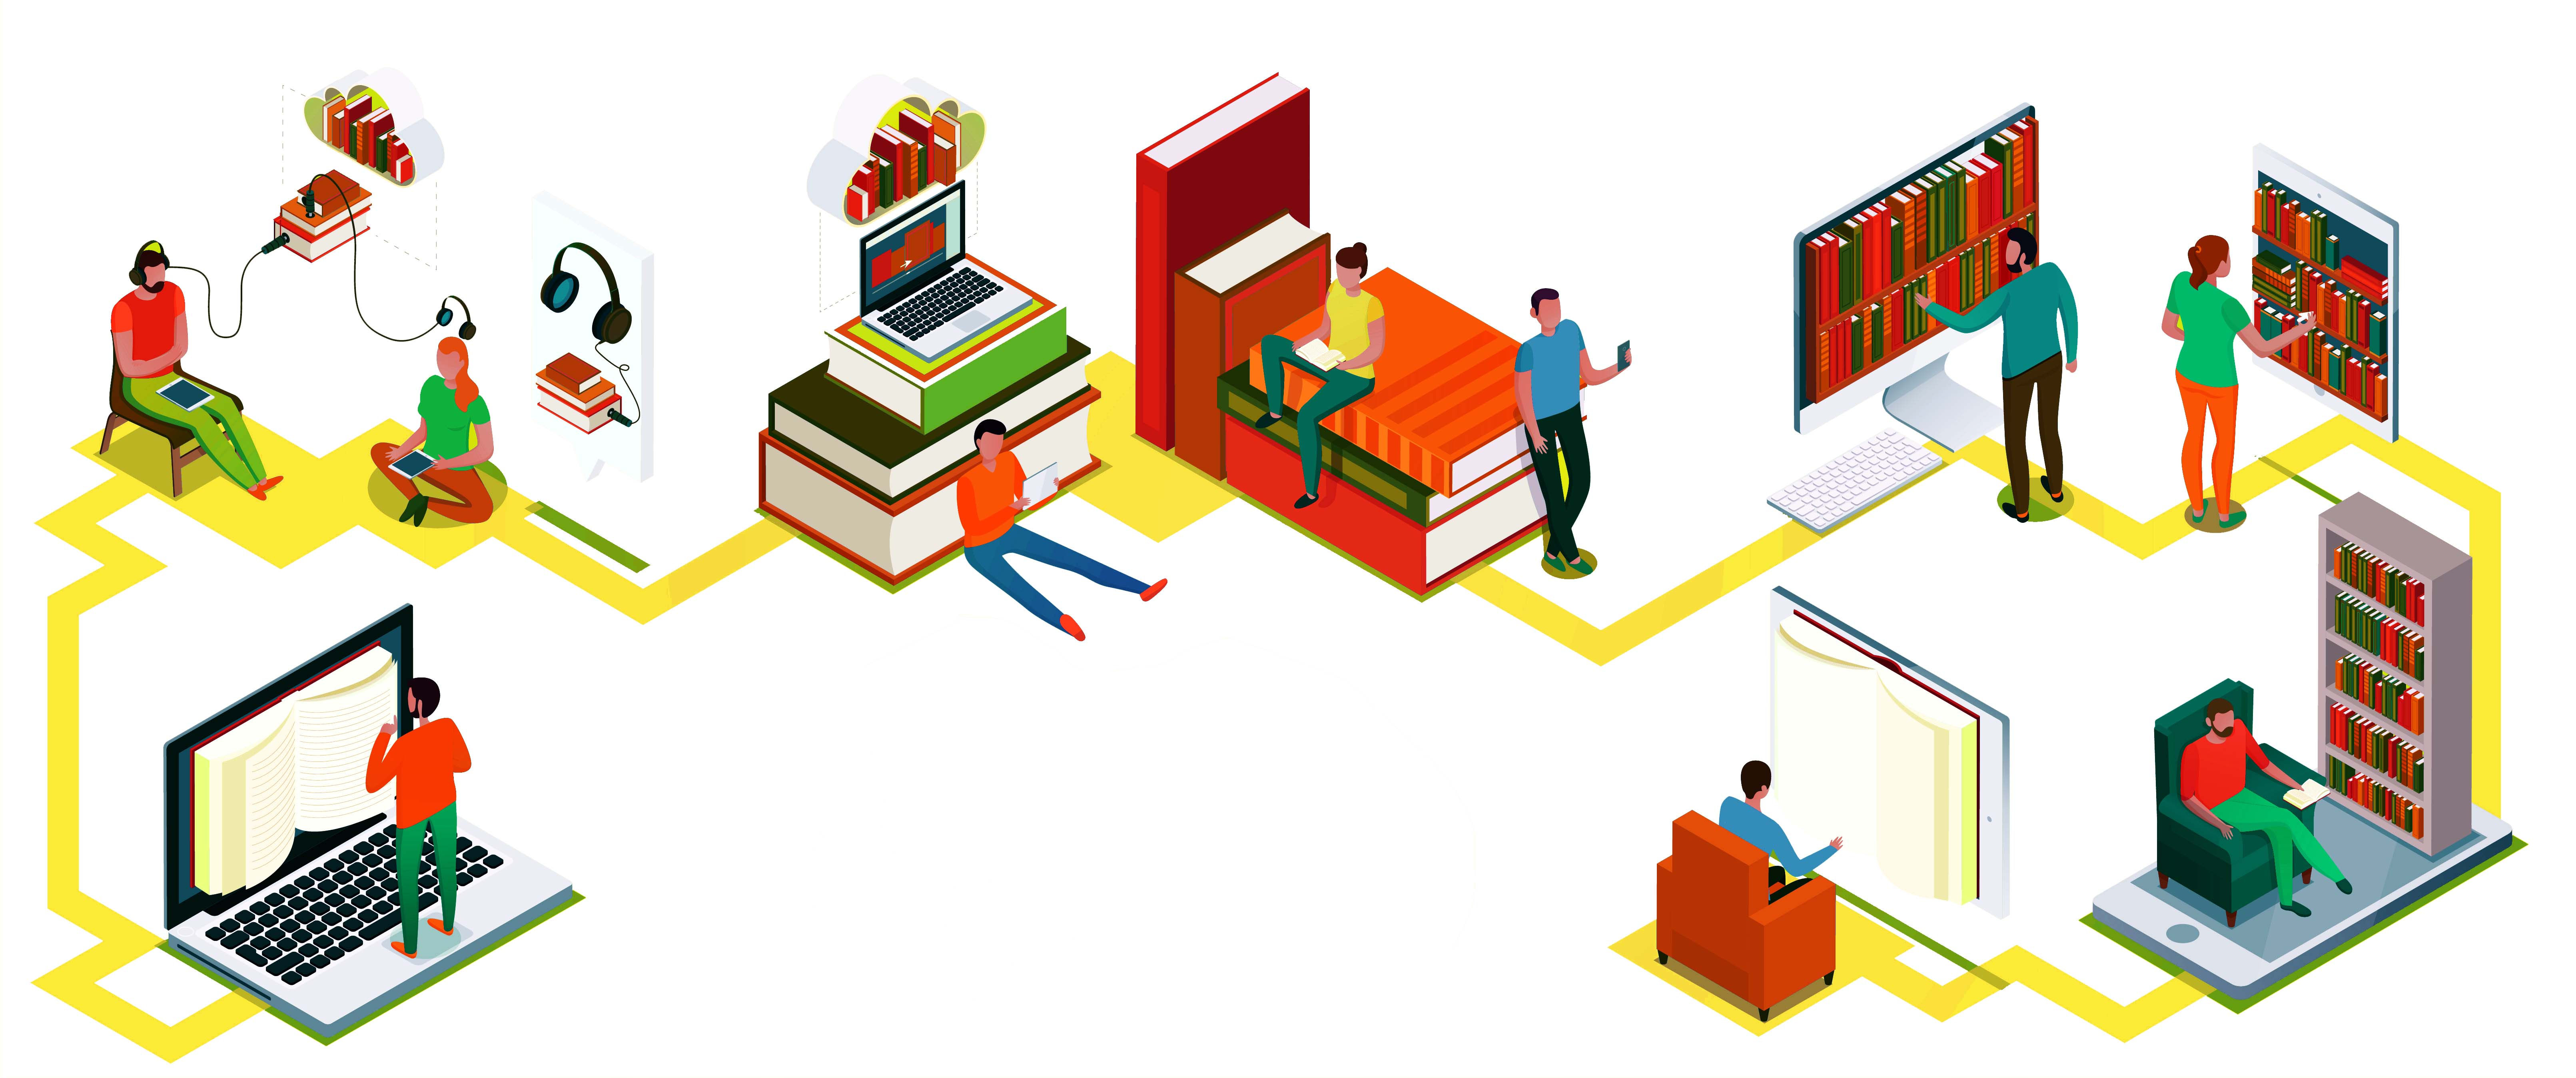 all in one digital library for everyone